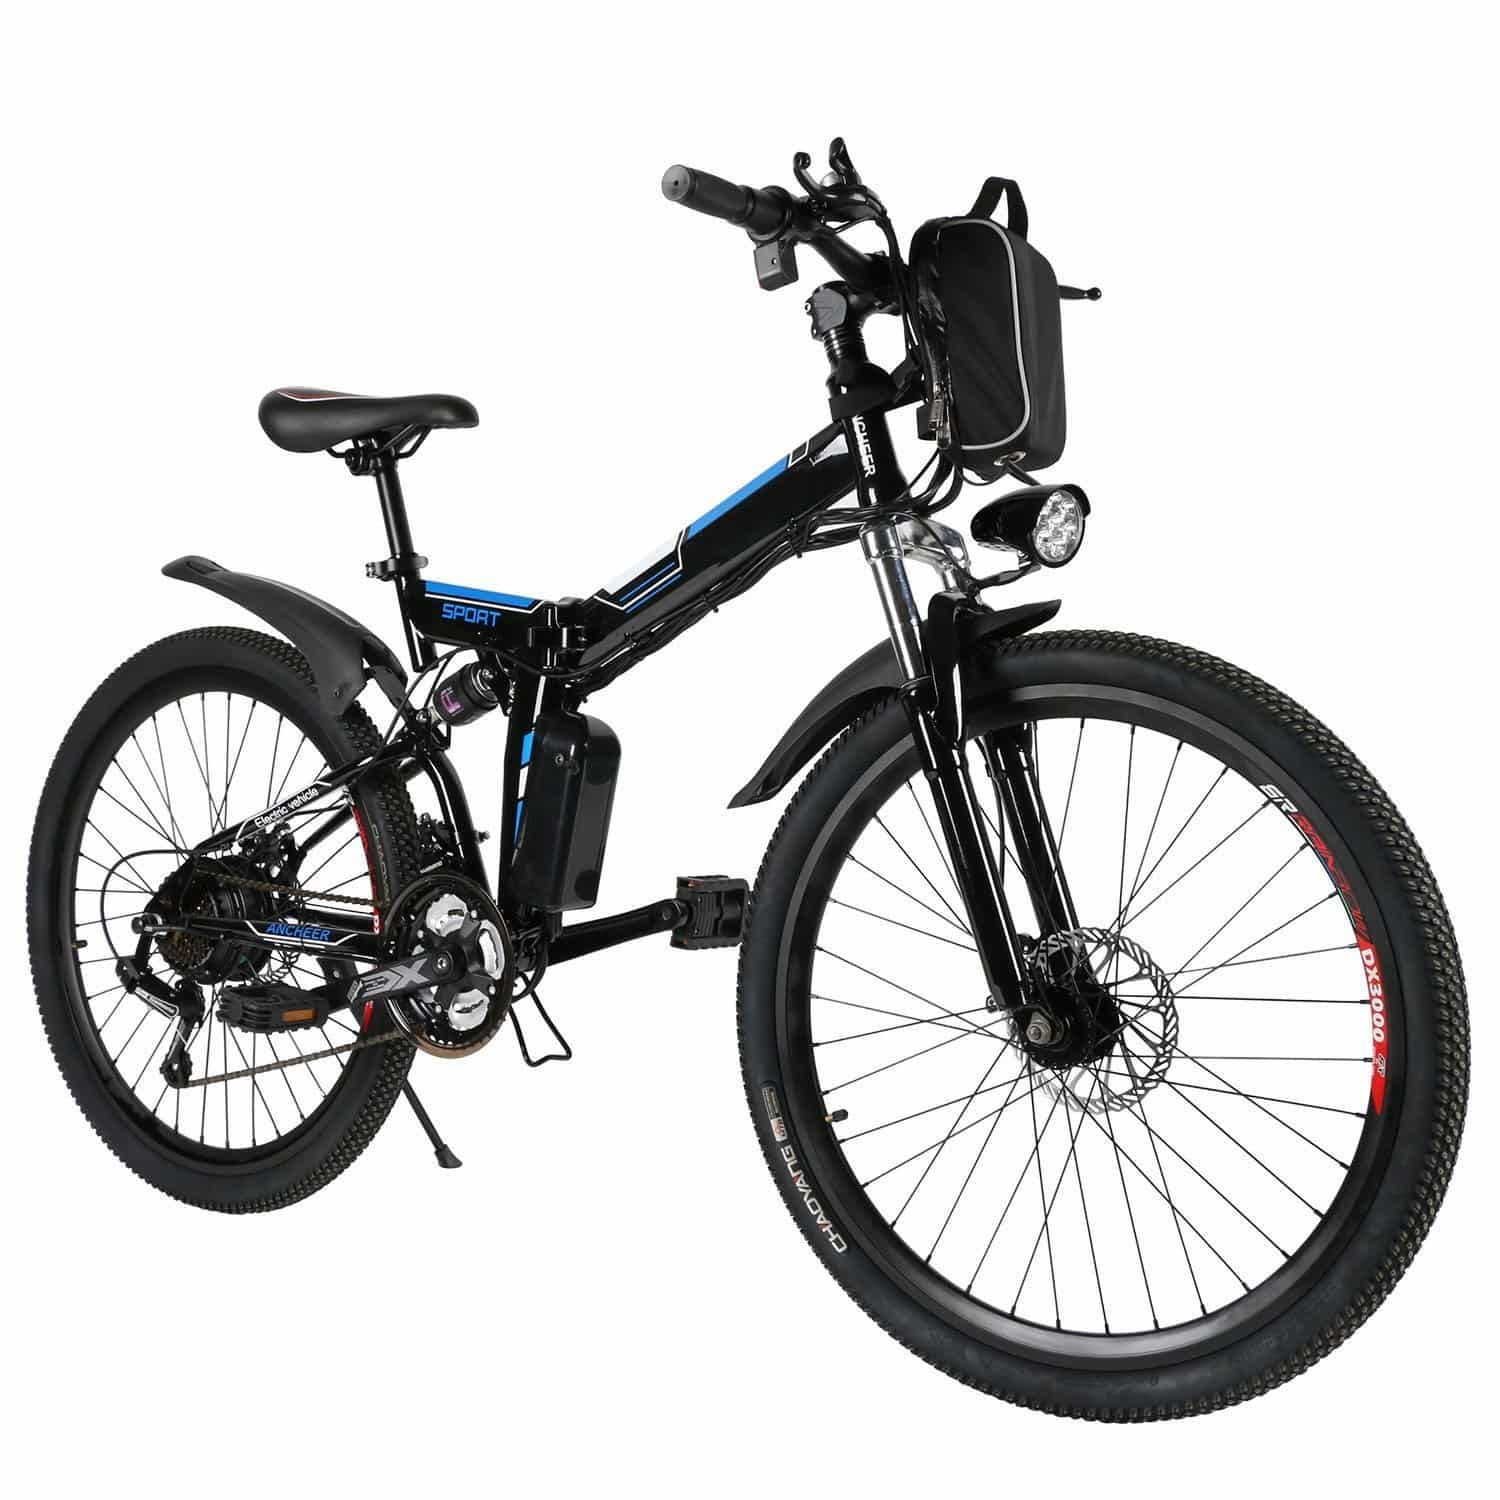 Top 10 Best Electric Mountain Bikes in 2018